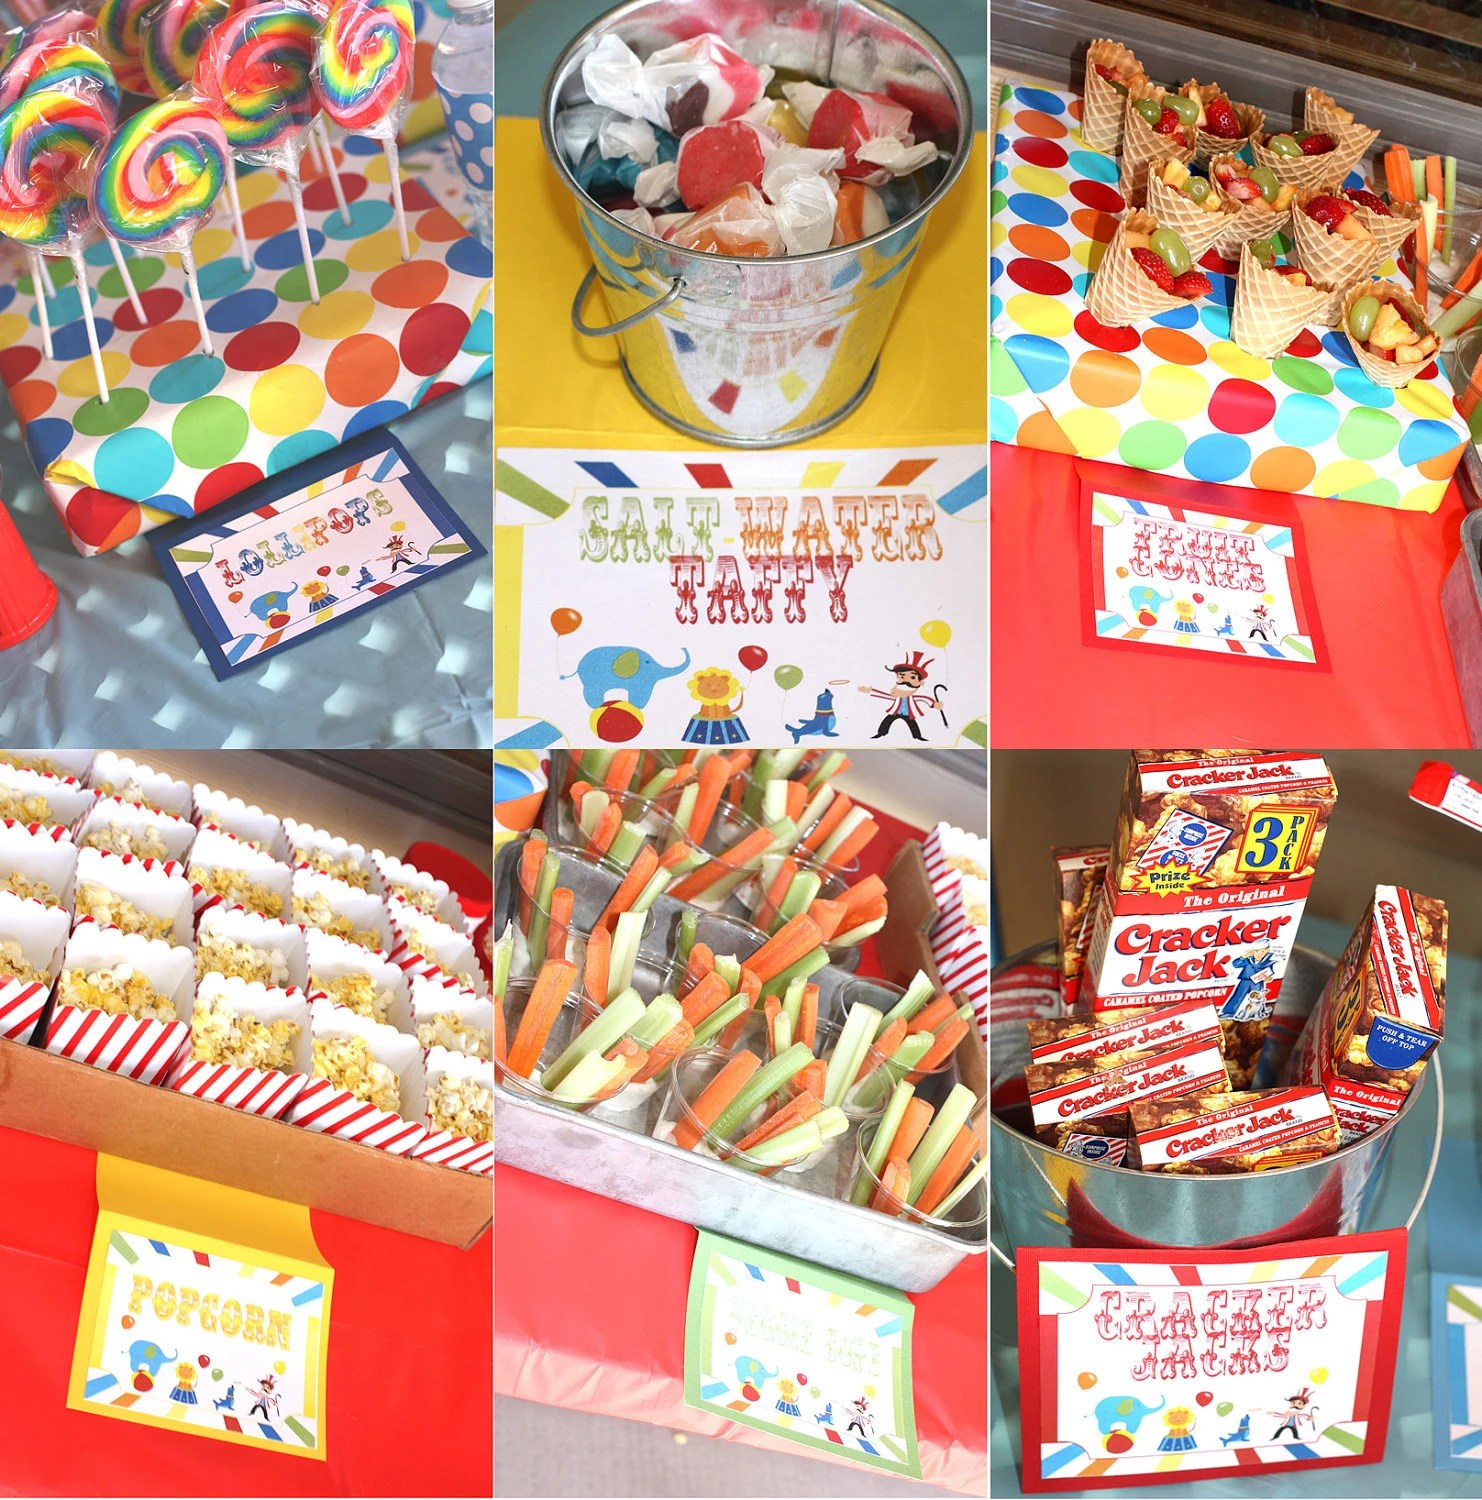 Carnival Birthday Party Signs Circus Signs Games sign Prizes